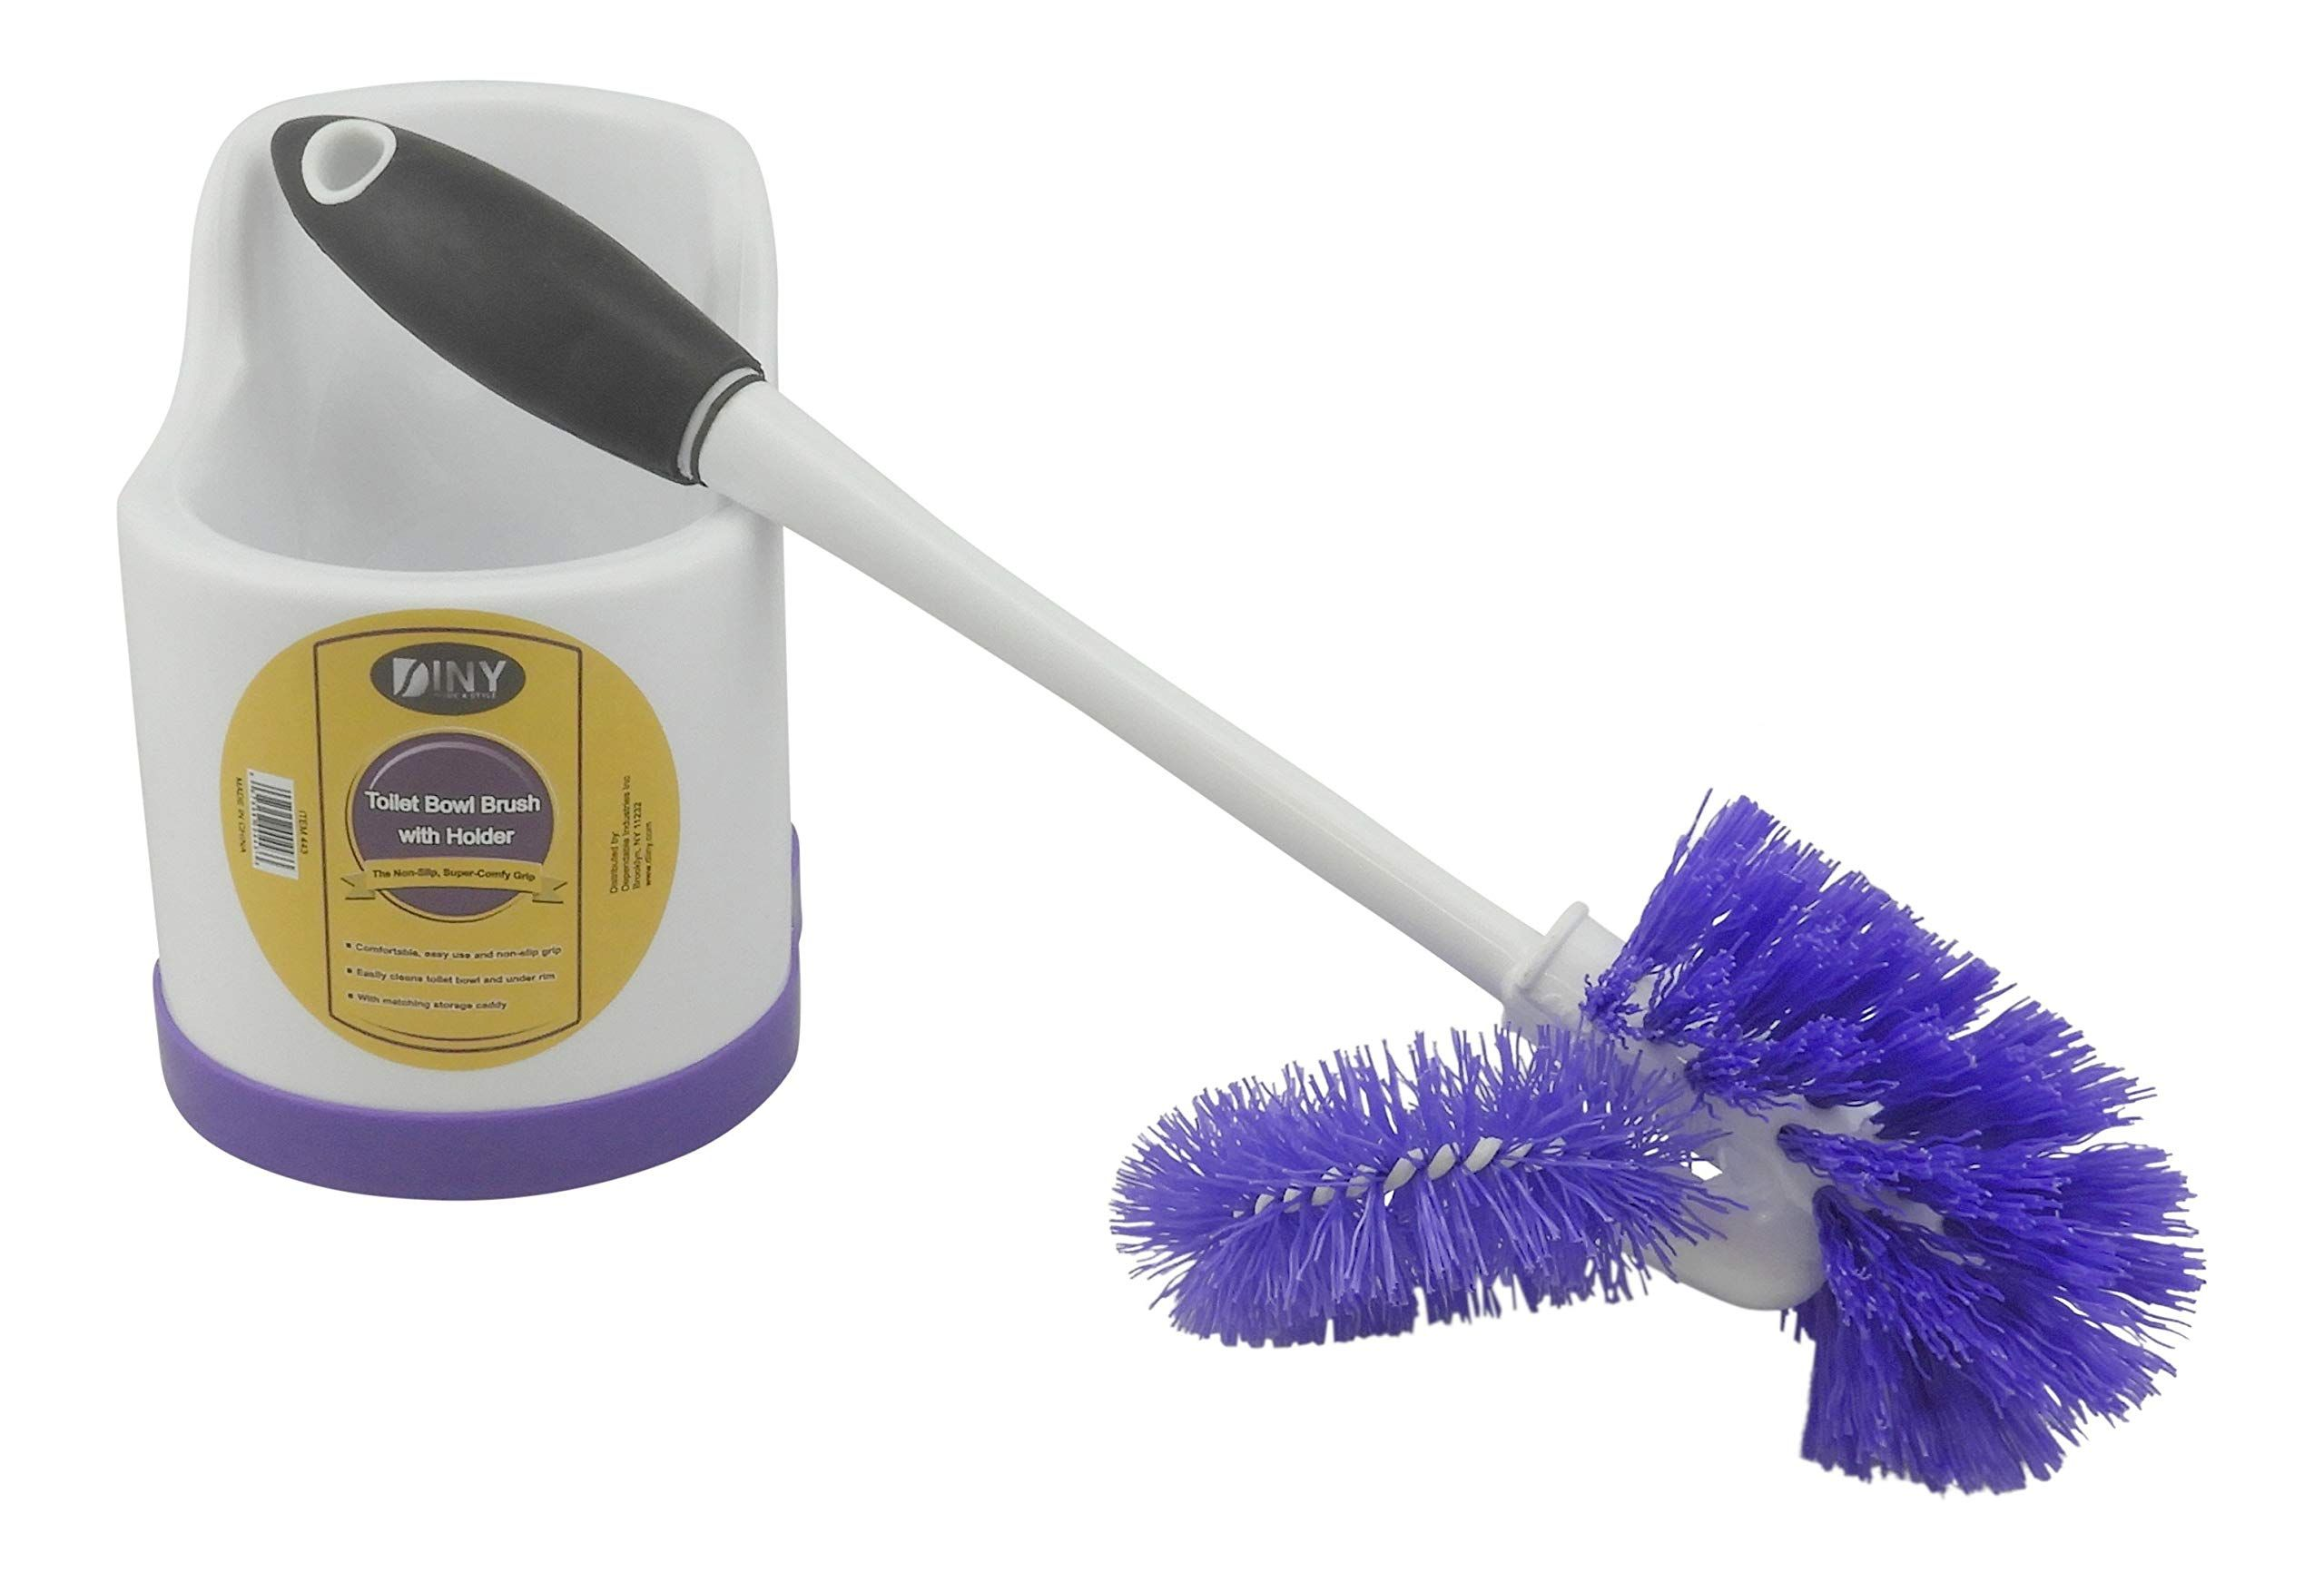 Diny Home Products Toilet Bowl Brush With Rim Cleaner And Holder Set Toilet Bowl Cleaning System With Scrubbin In 2020 Toilet Bowl Brush Clean Toilet Bowl Toilet Bowl